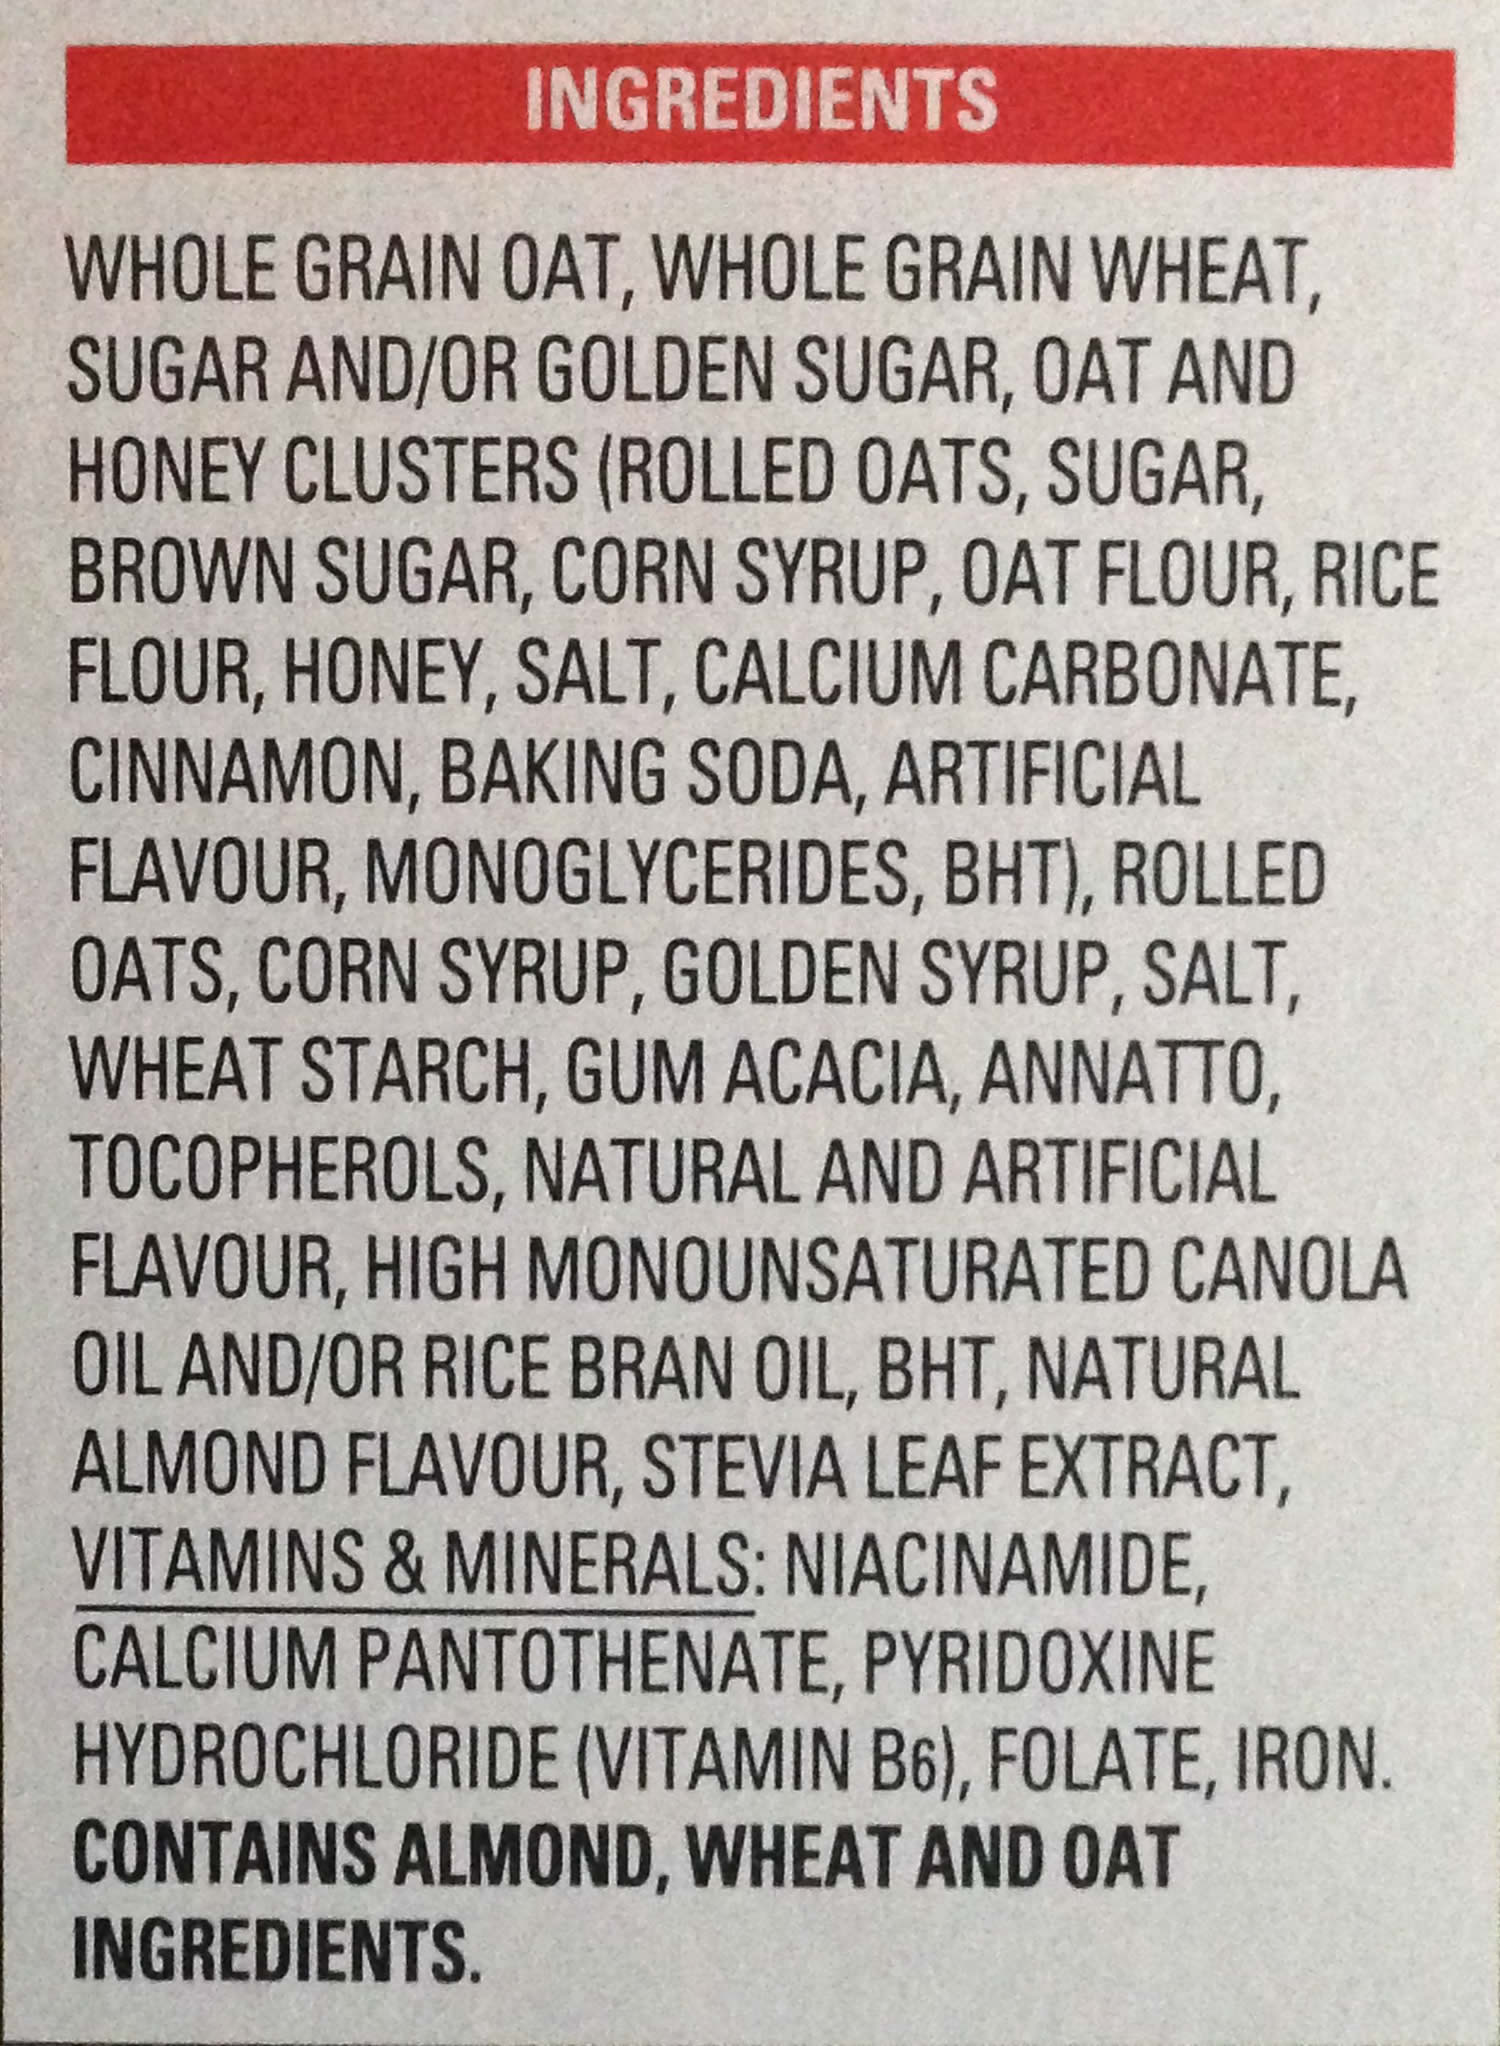 Breakfast cereal ingredients list